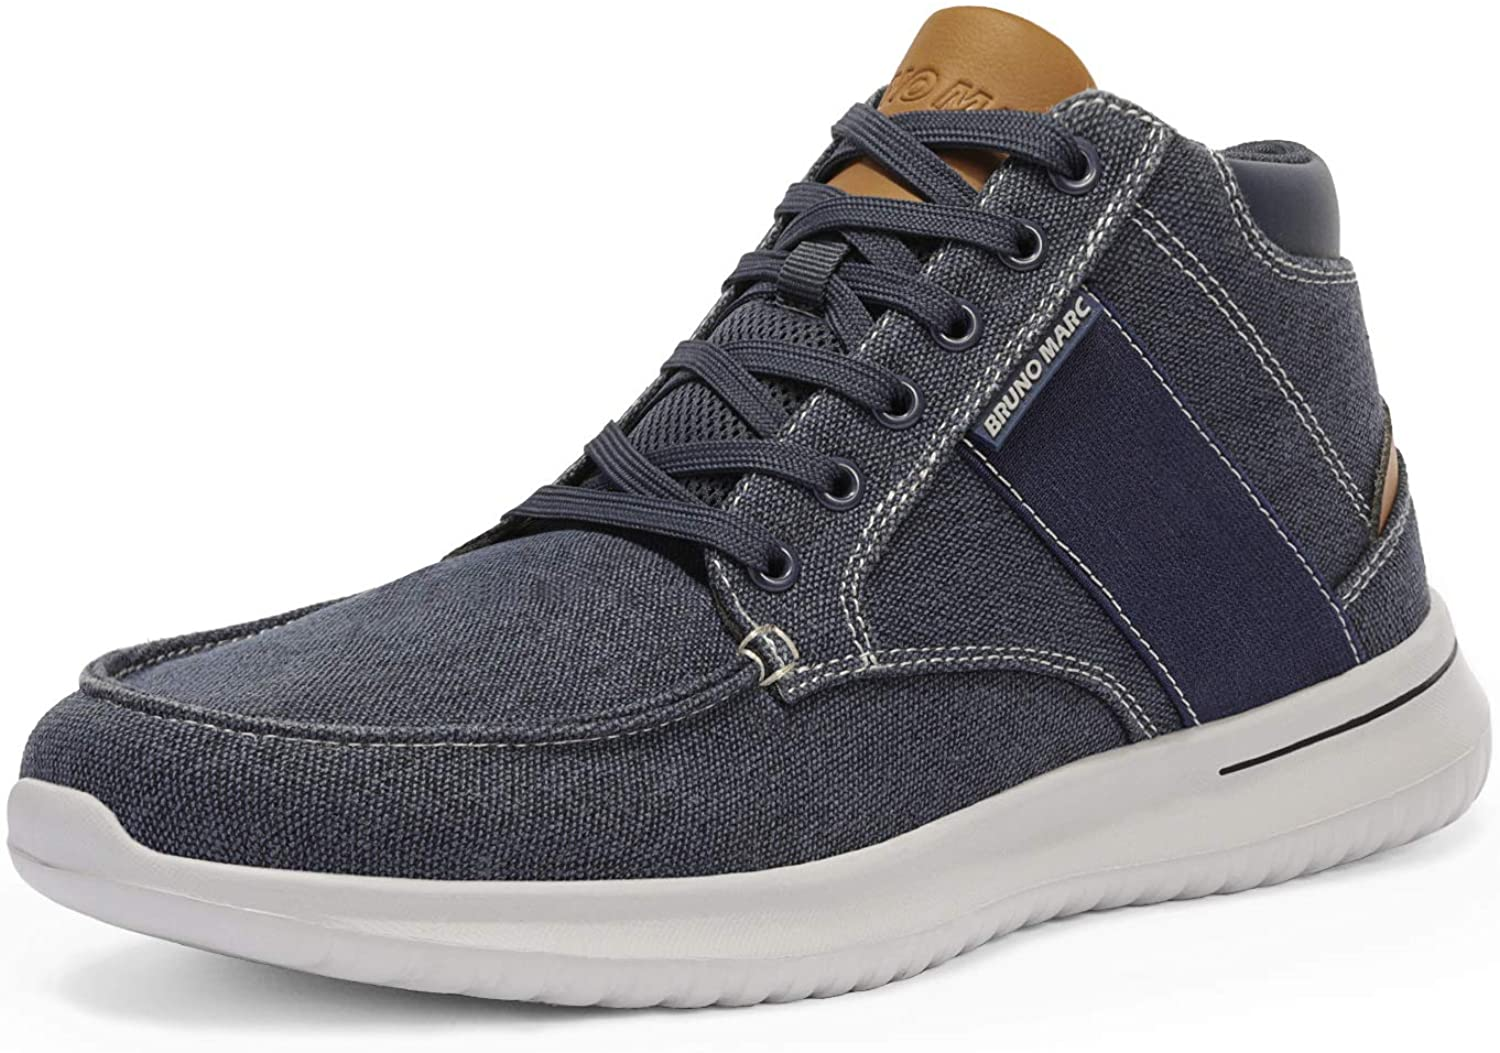 Bruno Marc Men's Casual High Top Sneakers Canvas Walking Shoes